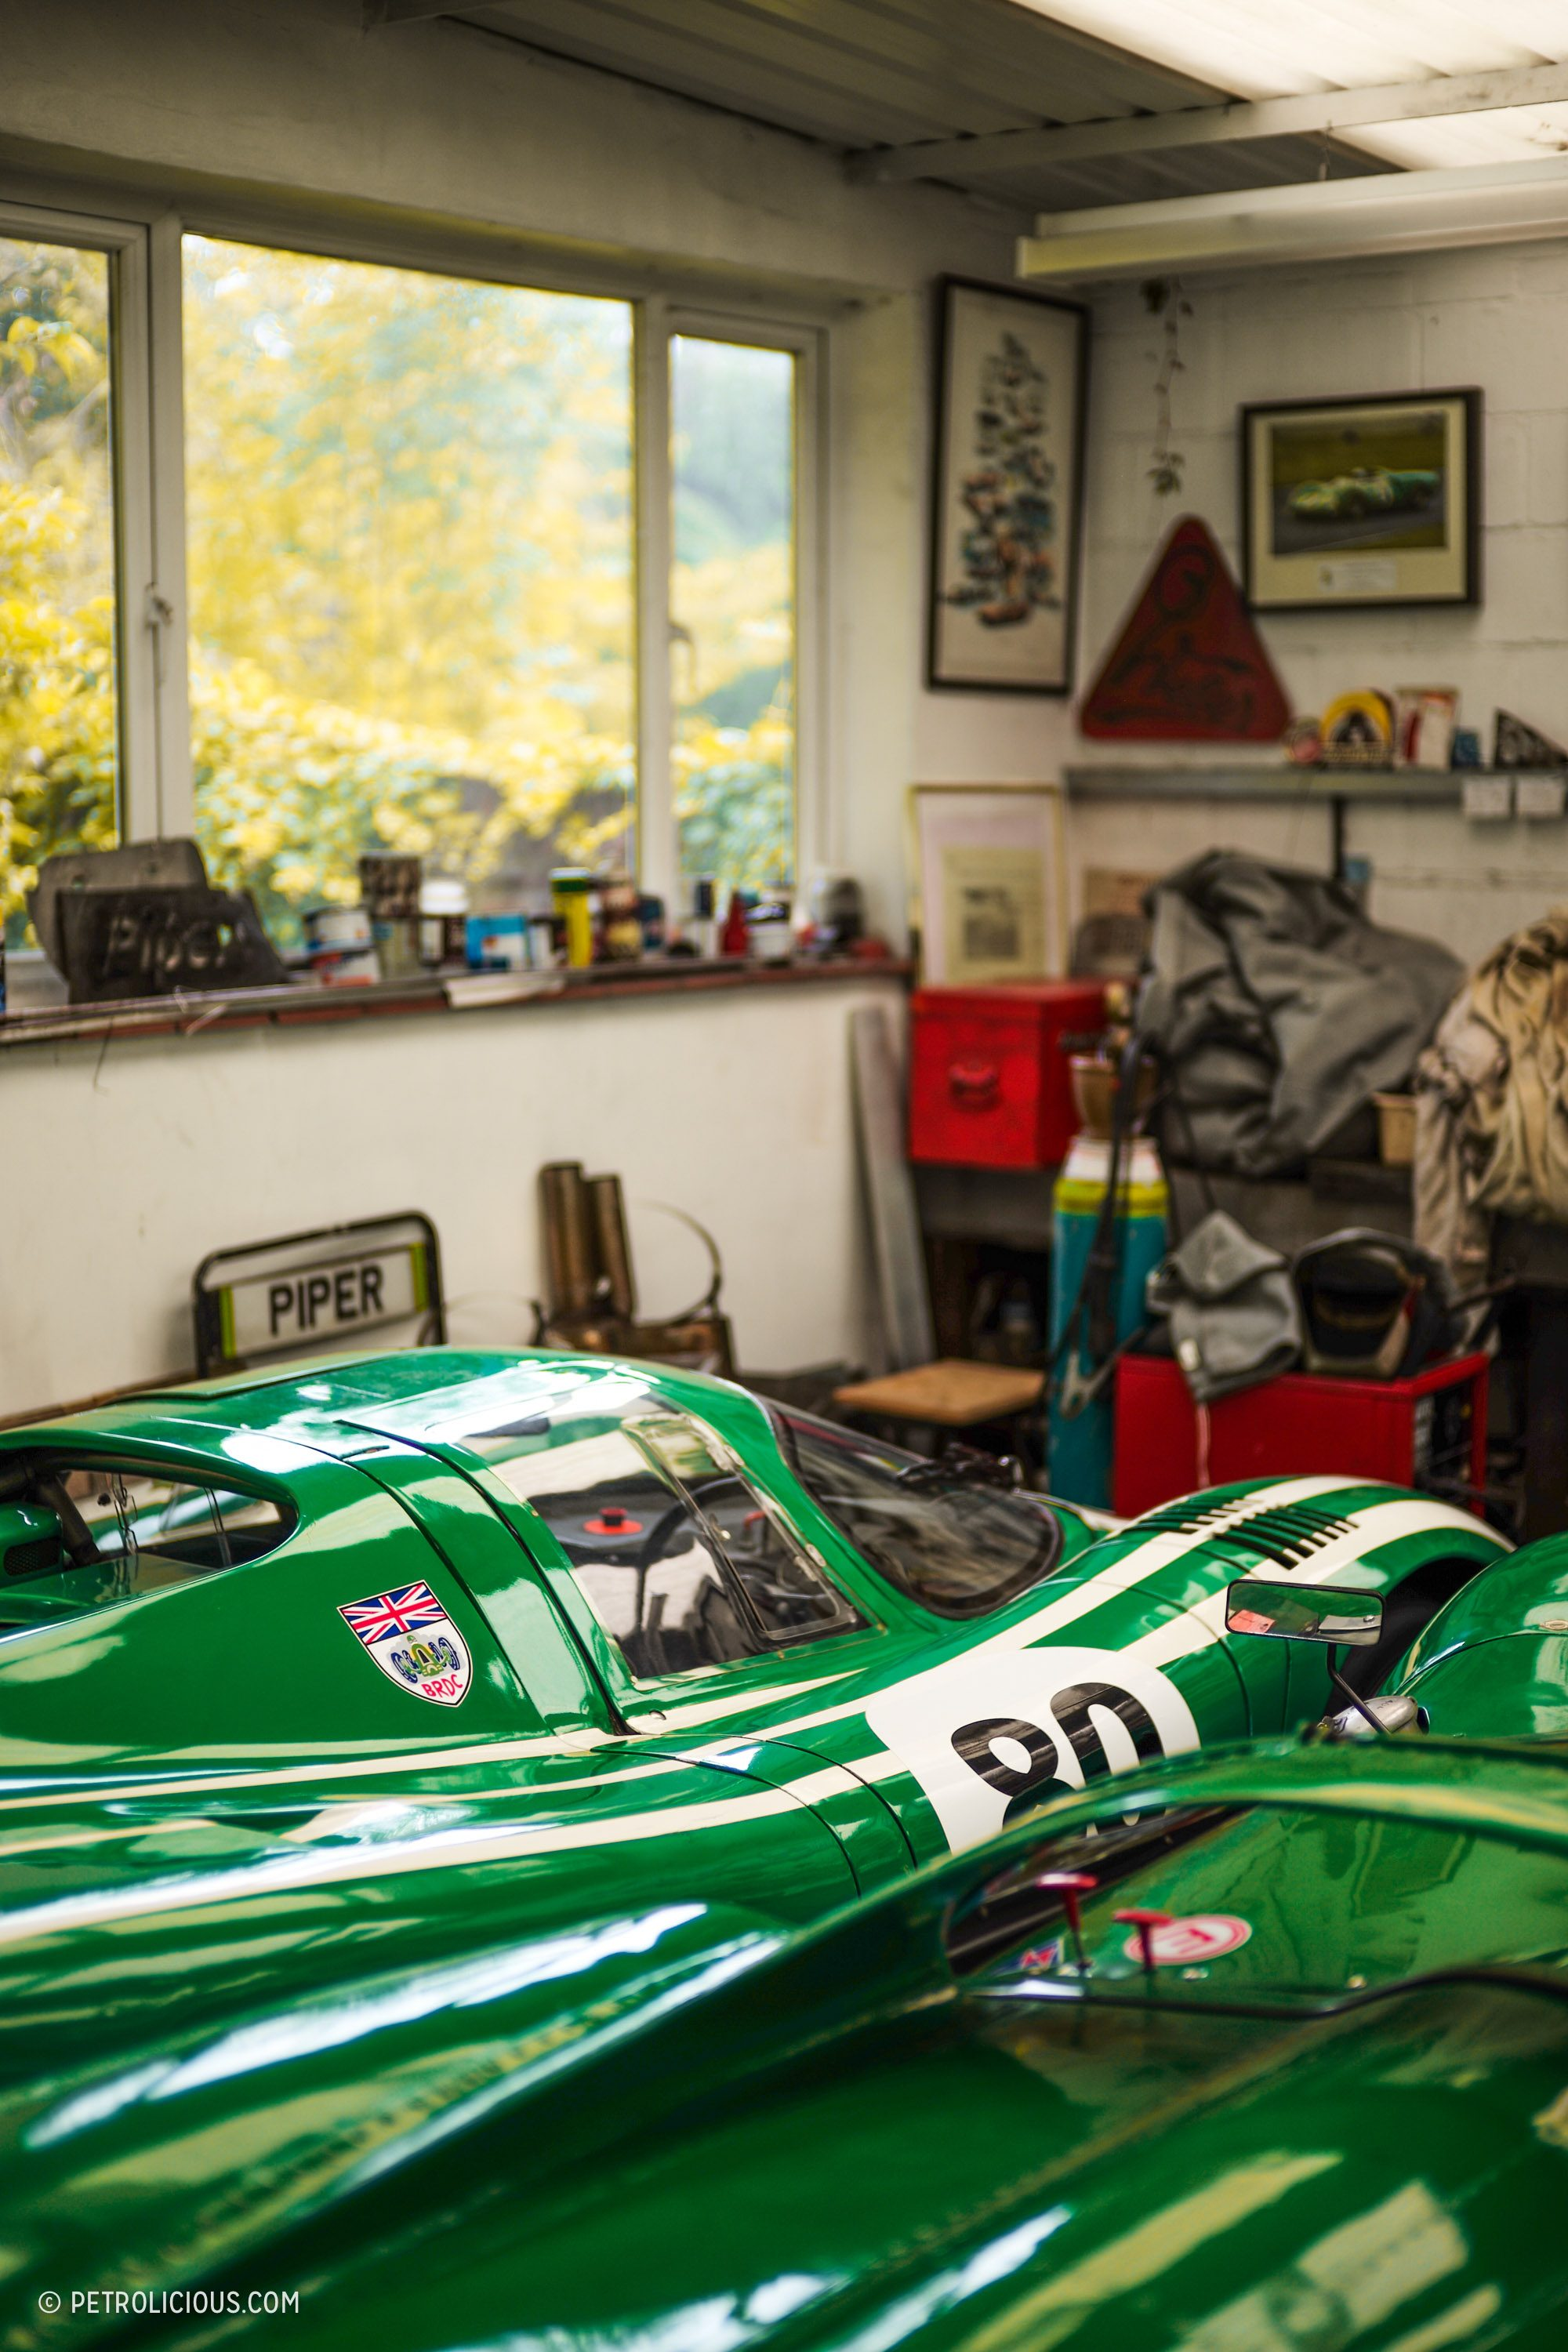 david piper s legendary green racecars are invading france. Black Bedroom Furniture Sets. Home Design Ideas